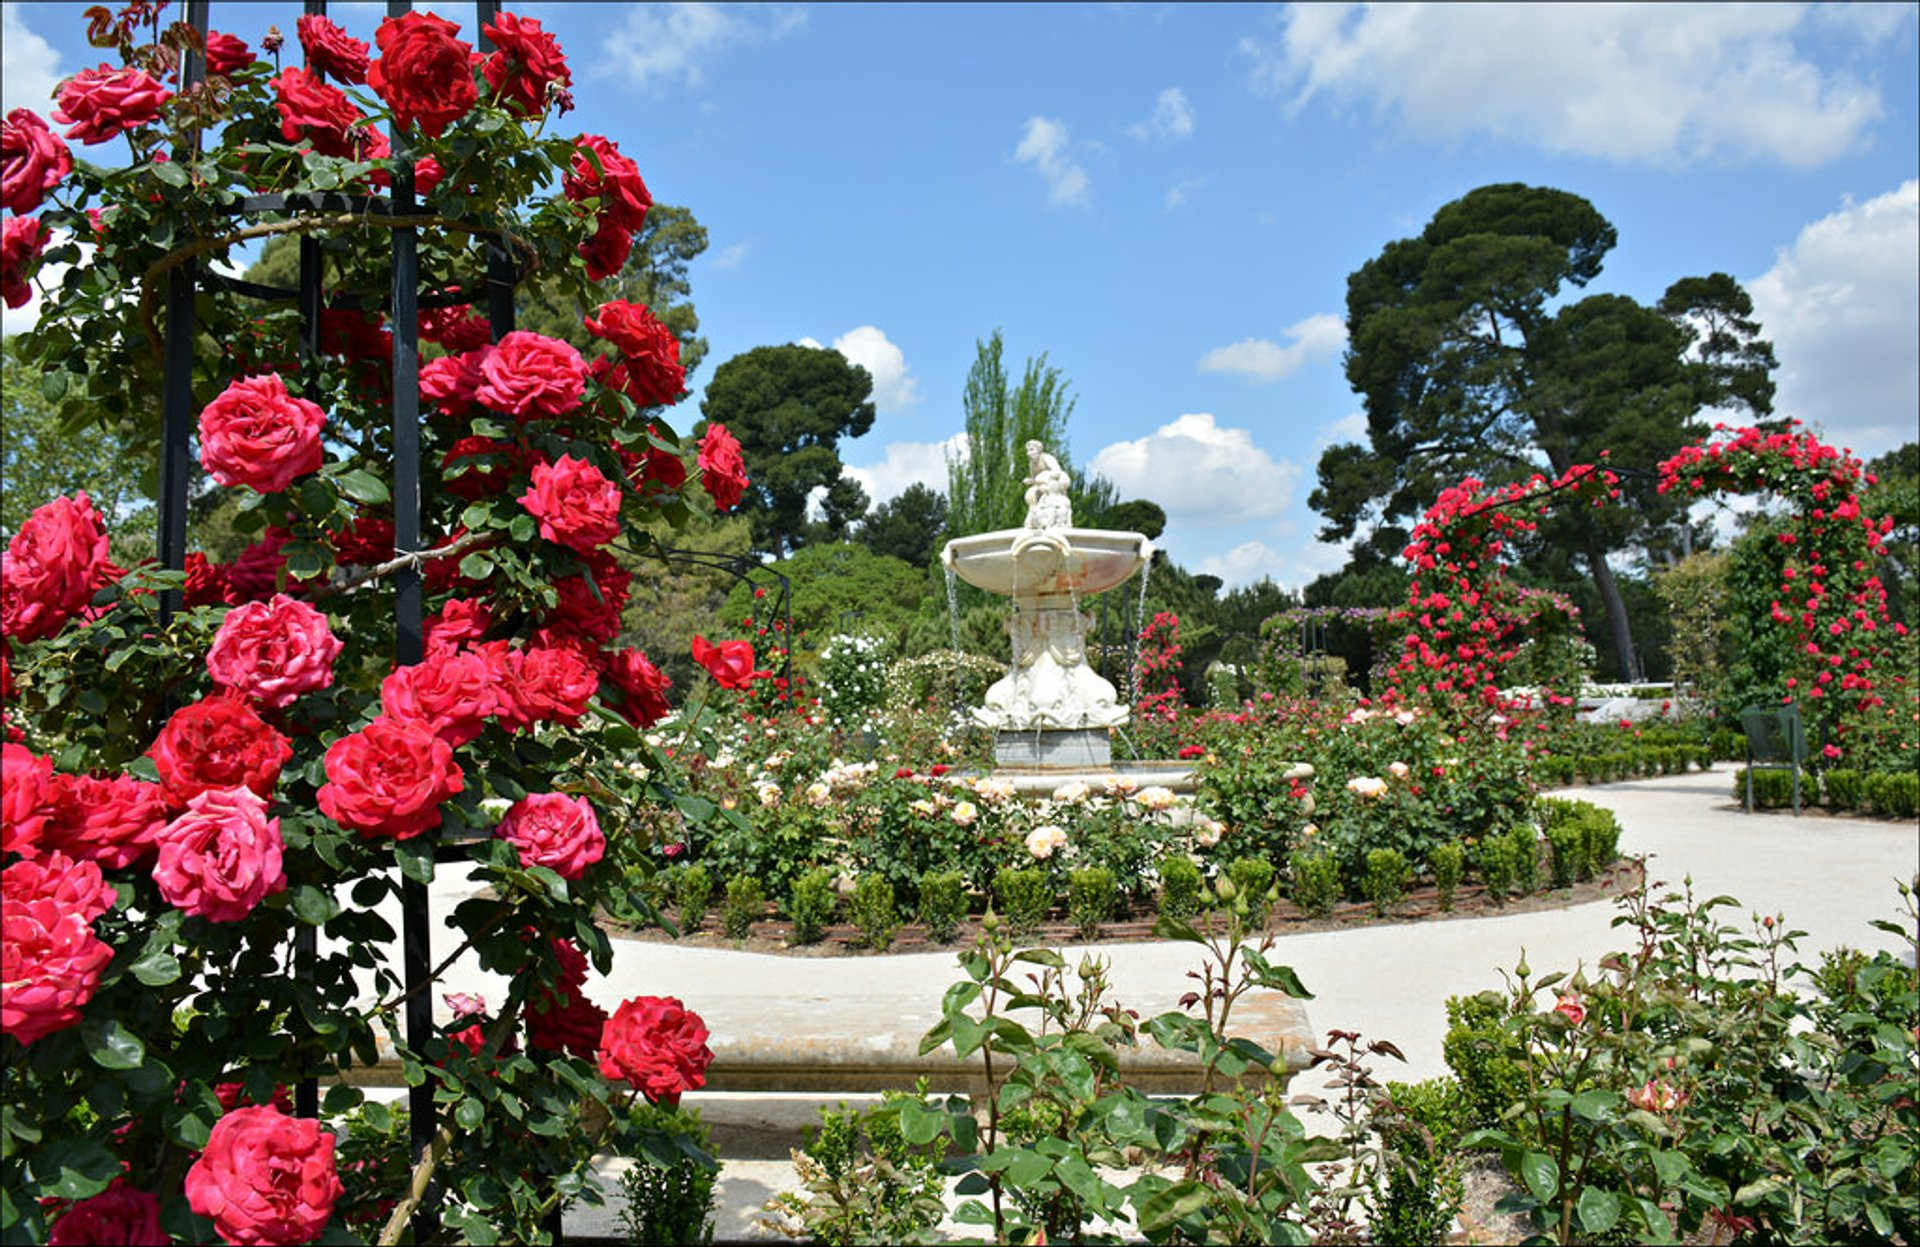 La Rosaleda (Rose Garden) in Madrid - Best Season 2020